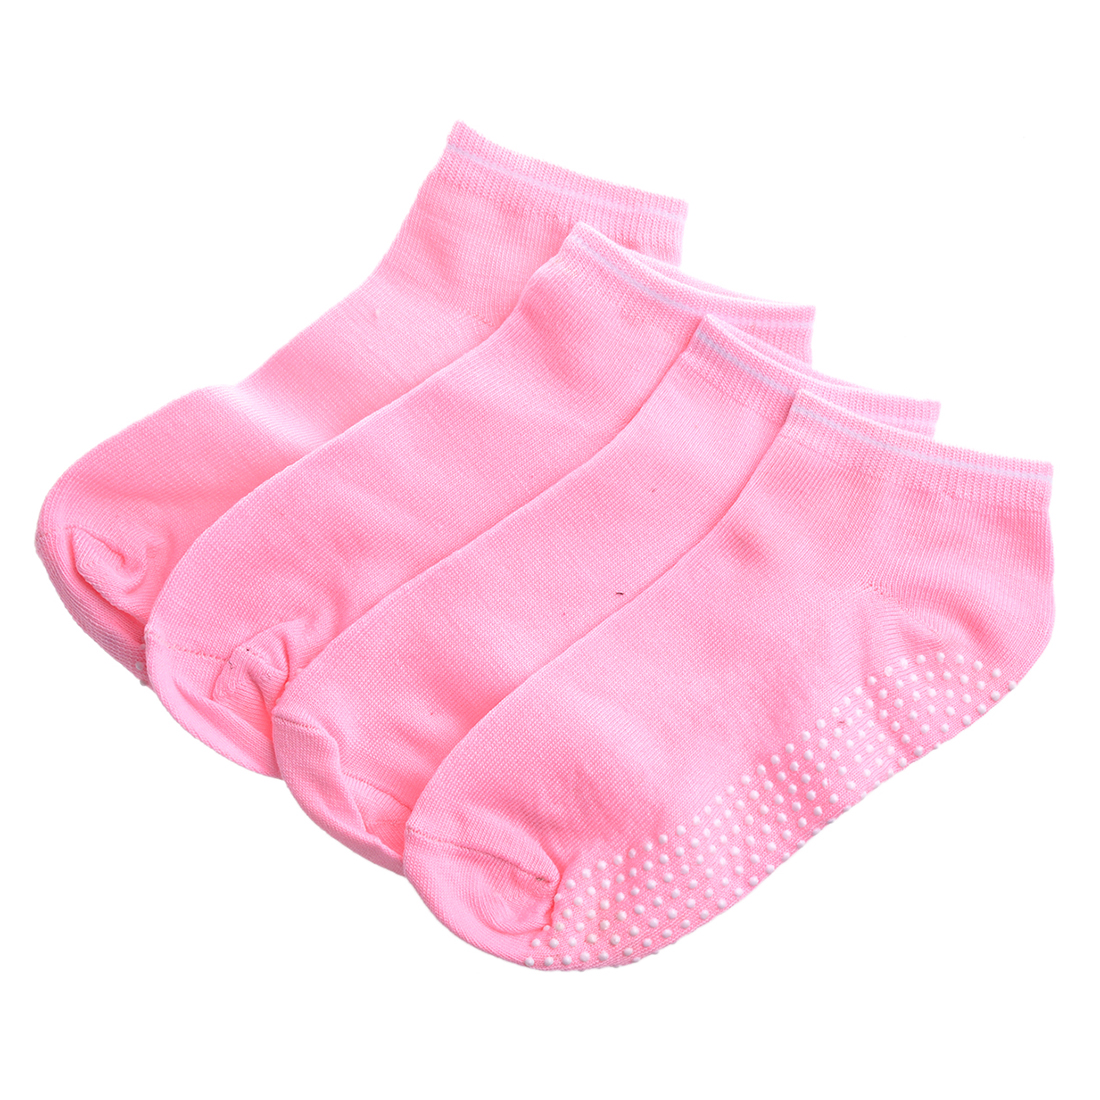 2 pairs Socks with non-slip massage Granules for women - Pink